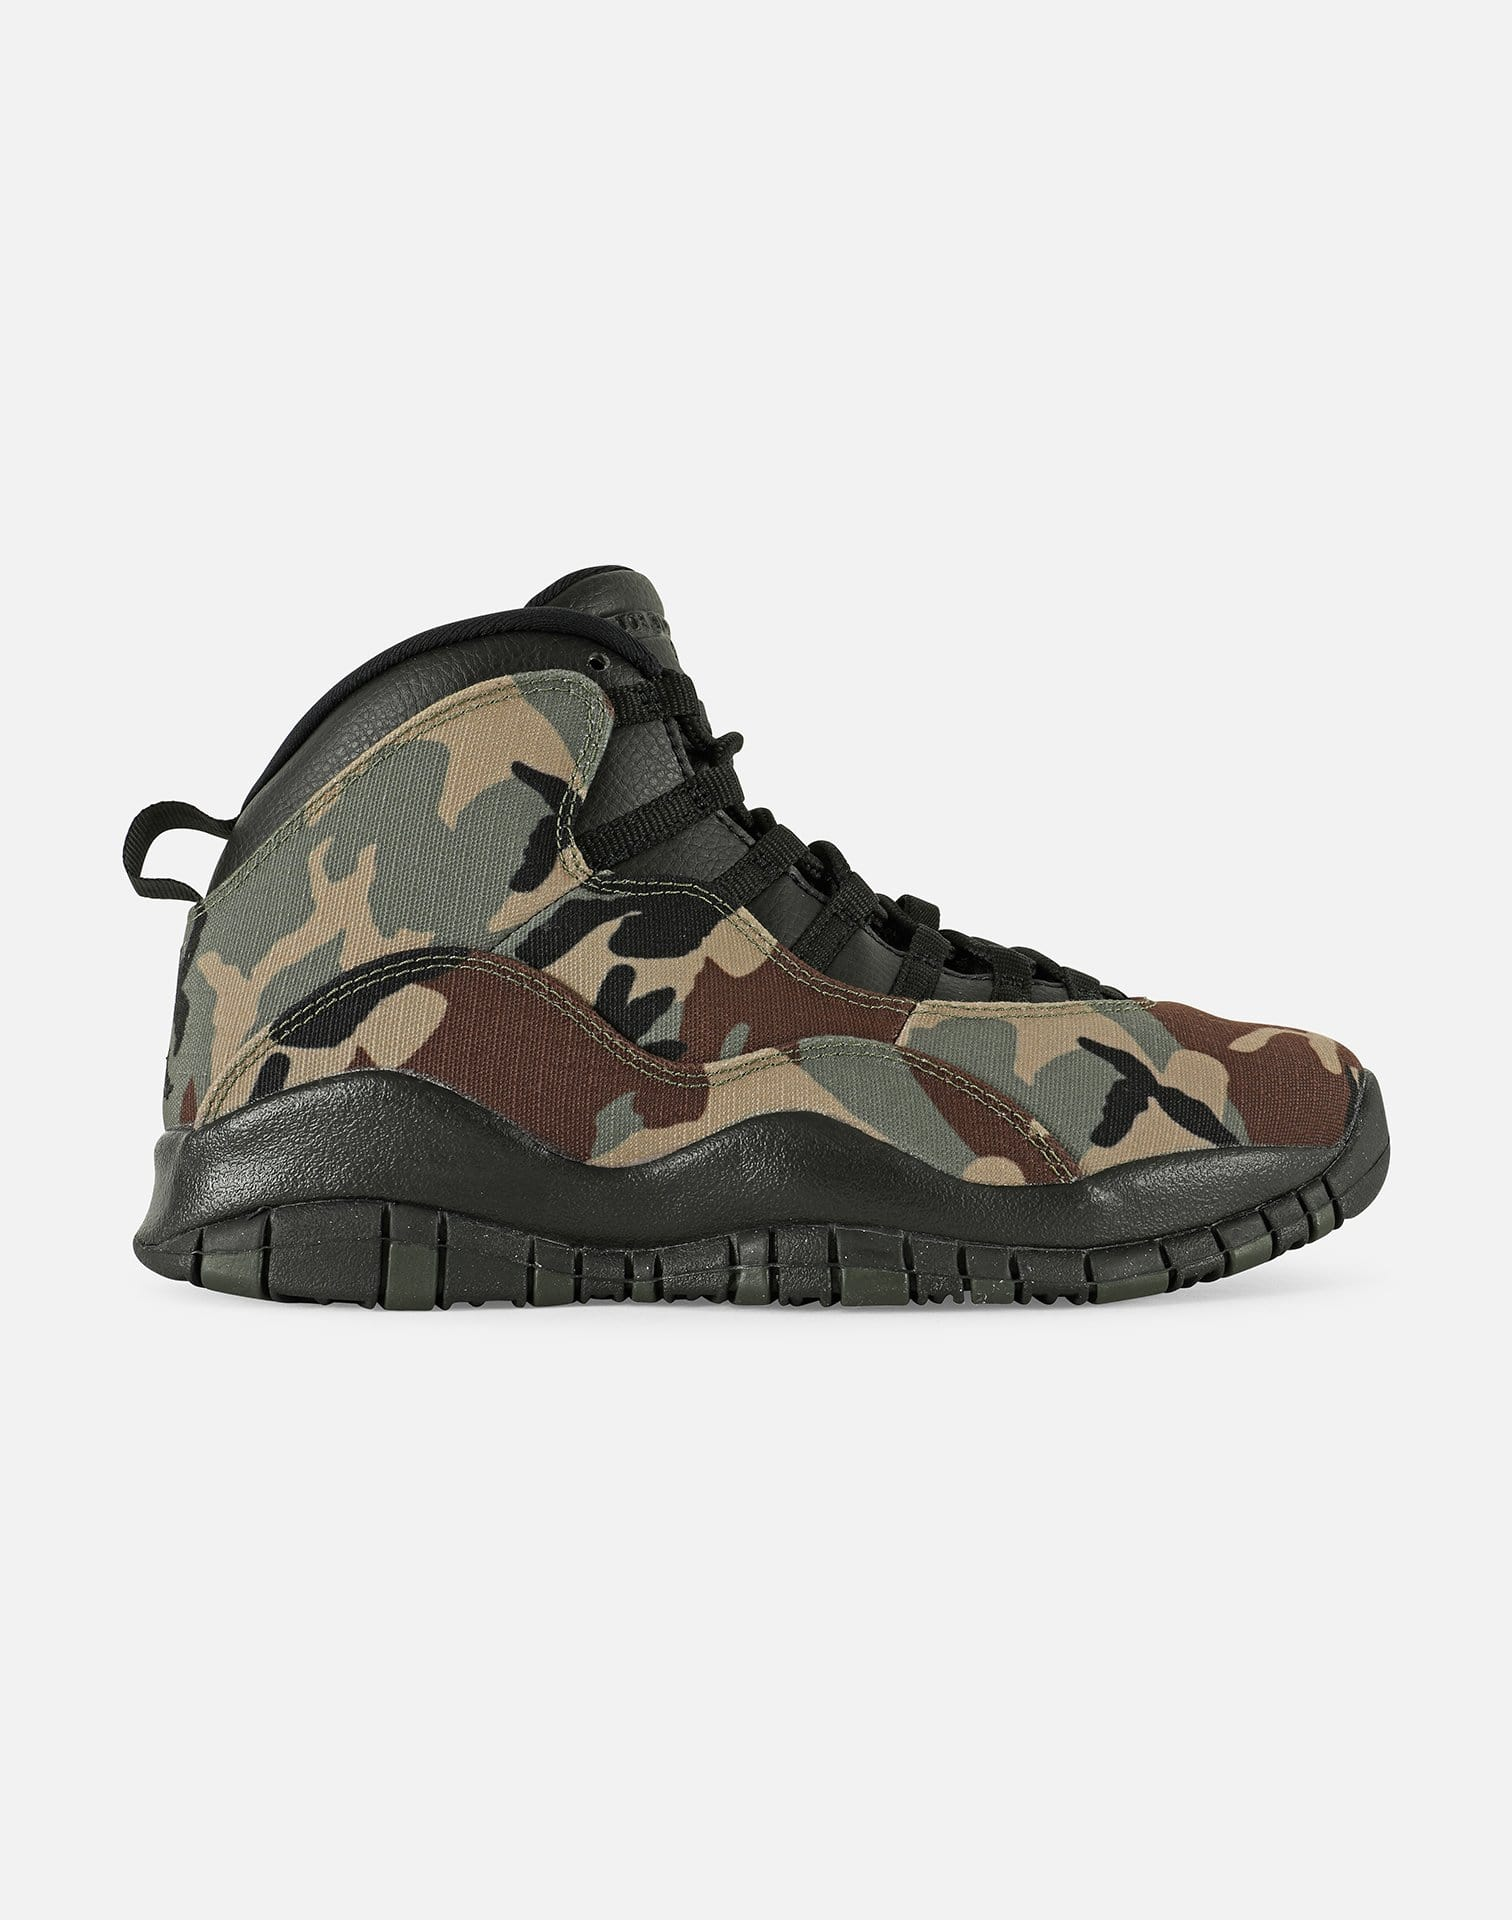 Jordan Men's Air Jordan Retro 10 'Woodland Camo'